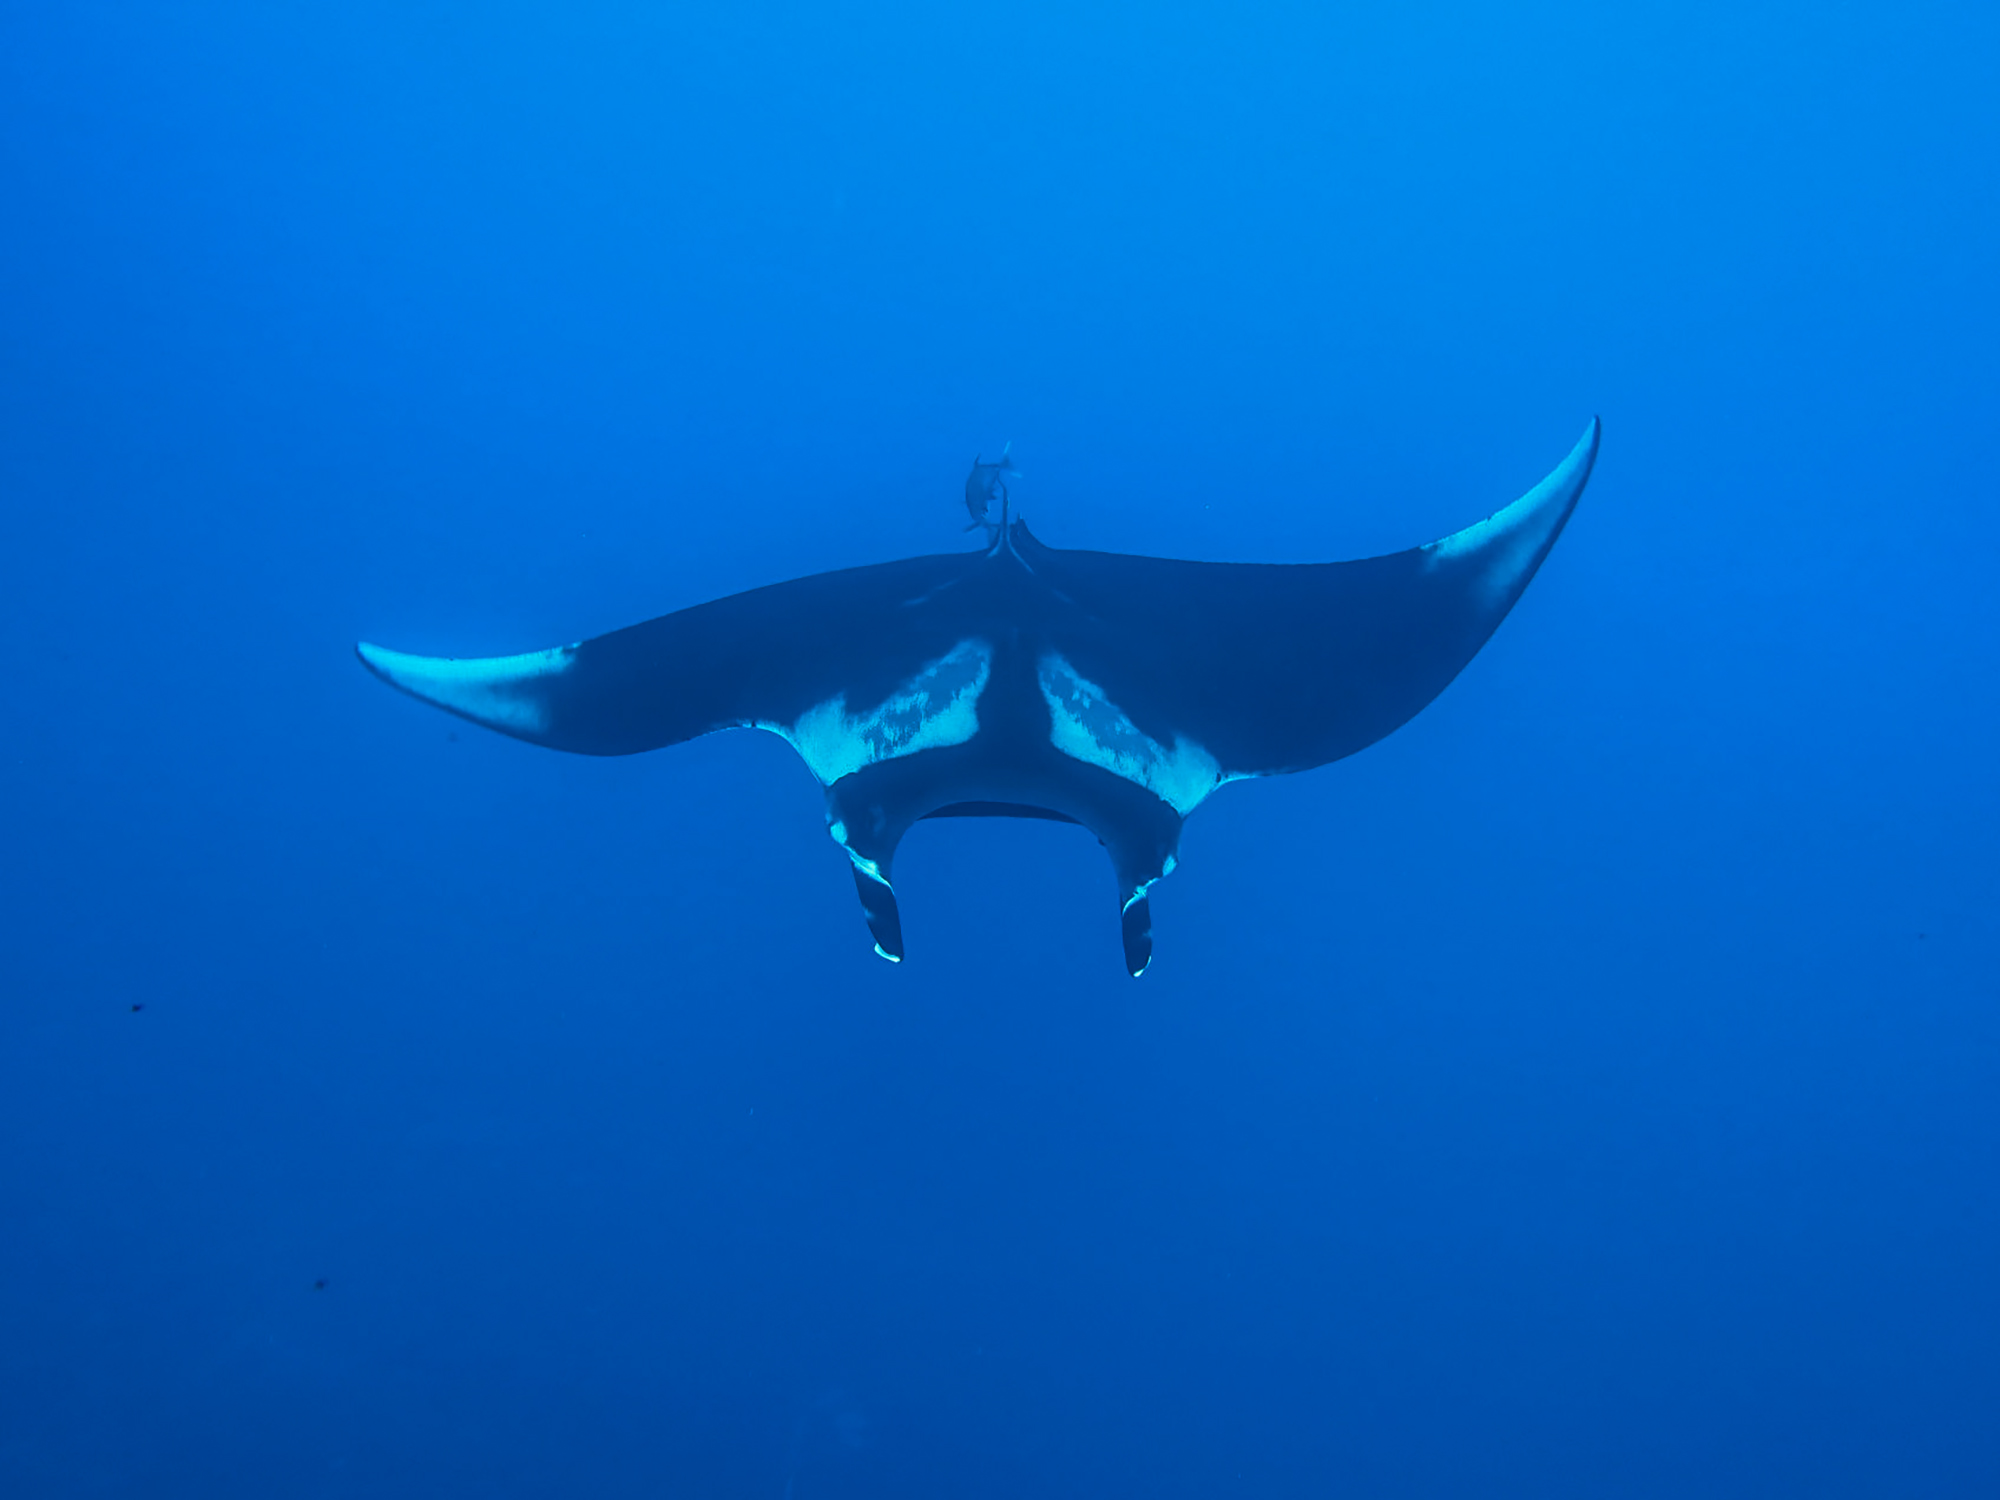 We're so happy to see these beautiful mantas again!